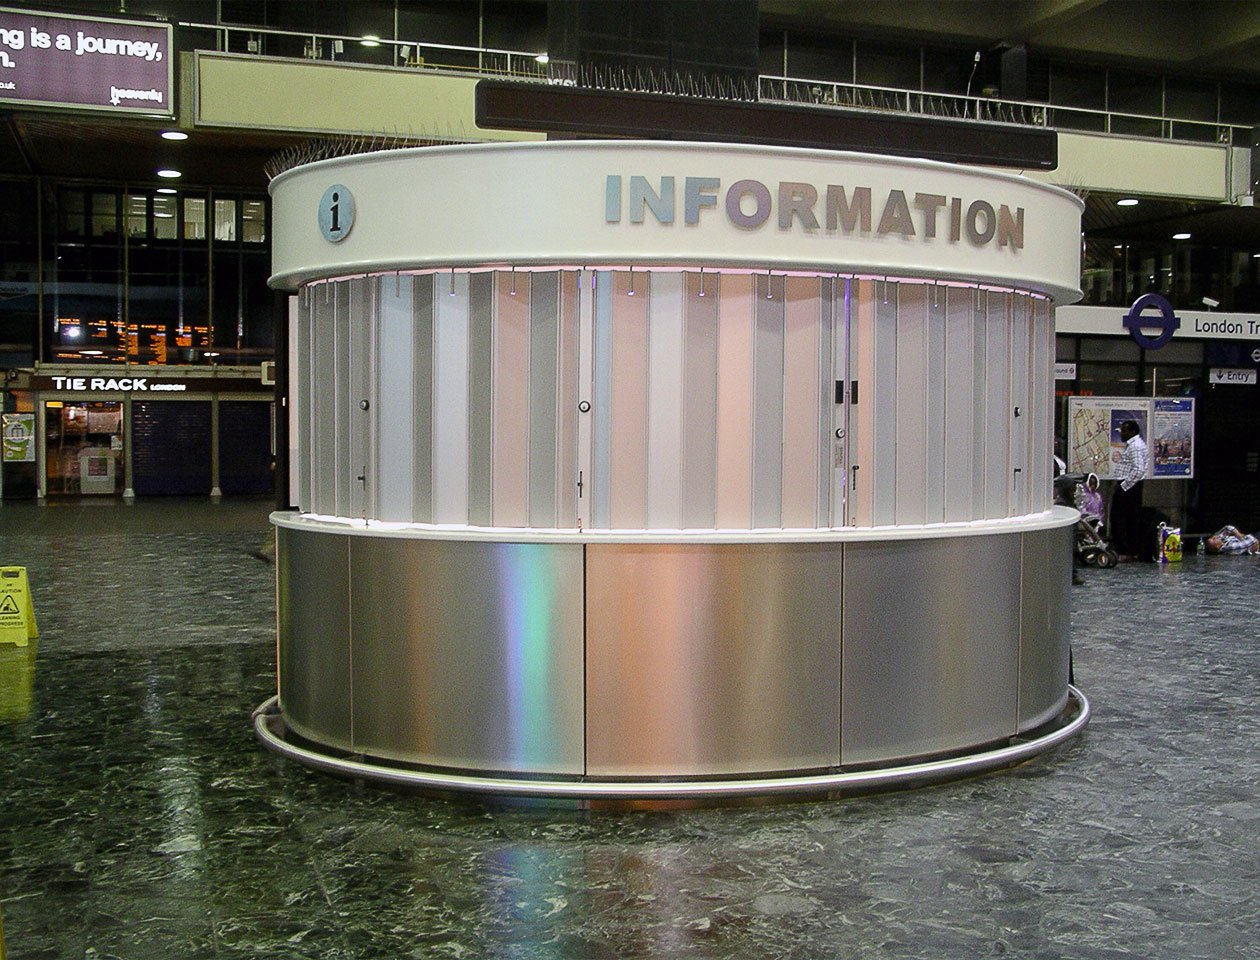 Ali Glyde aluminium sliding shutter in place at an information booth